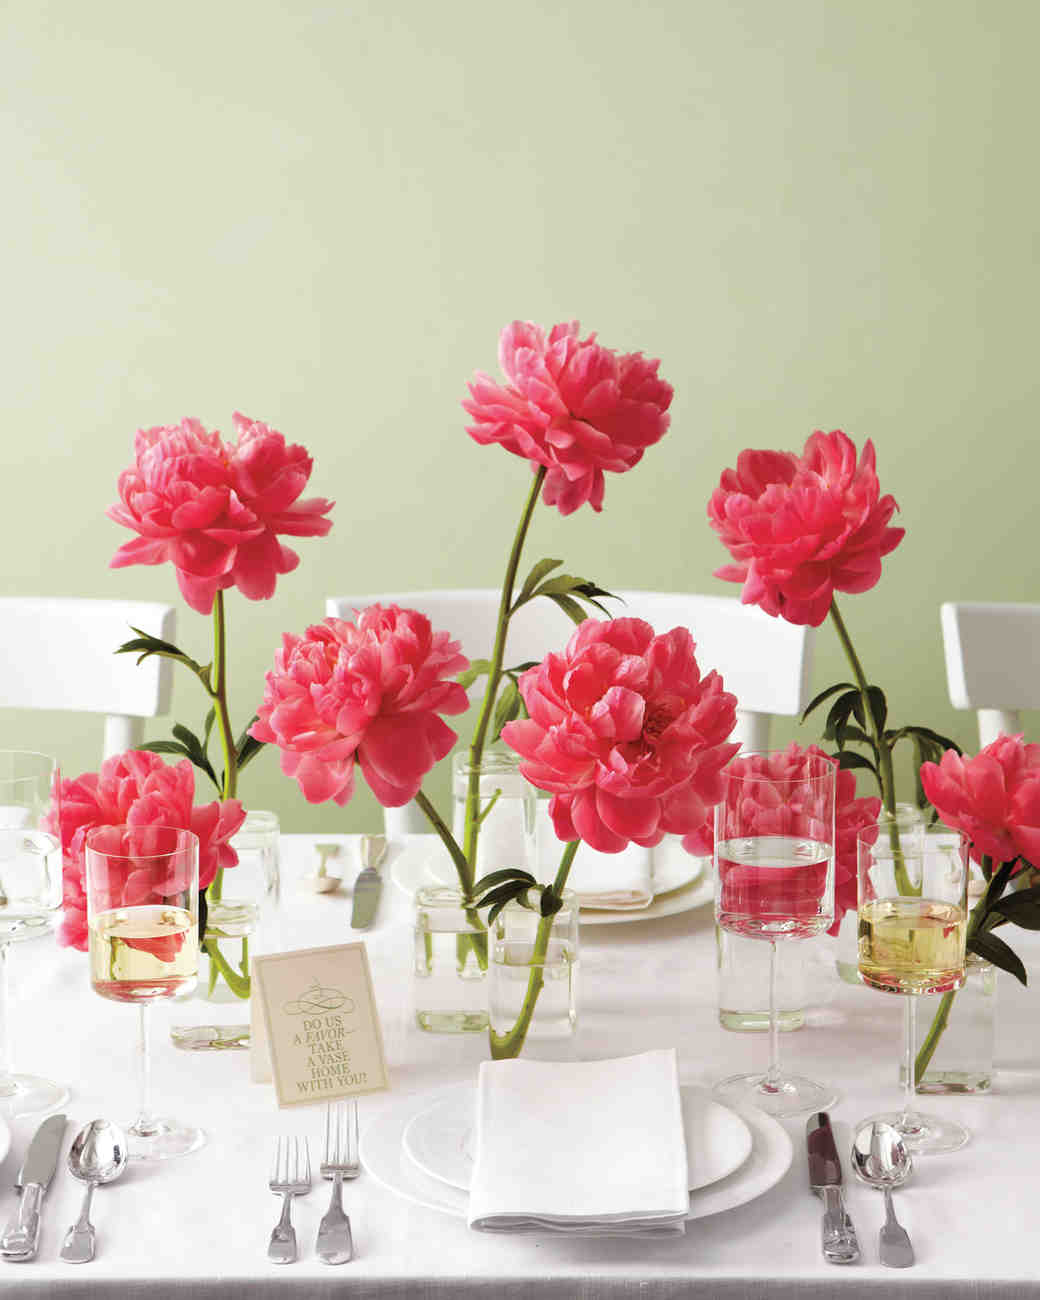 23 DIY Wedding Centerpieces We Love